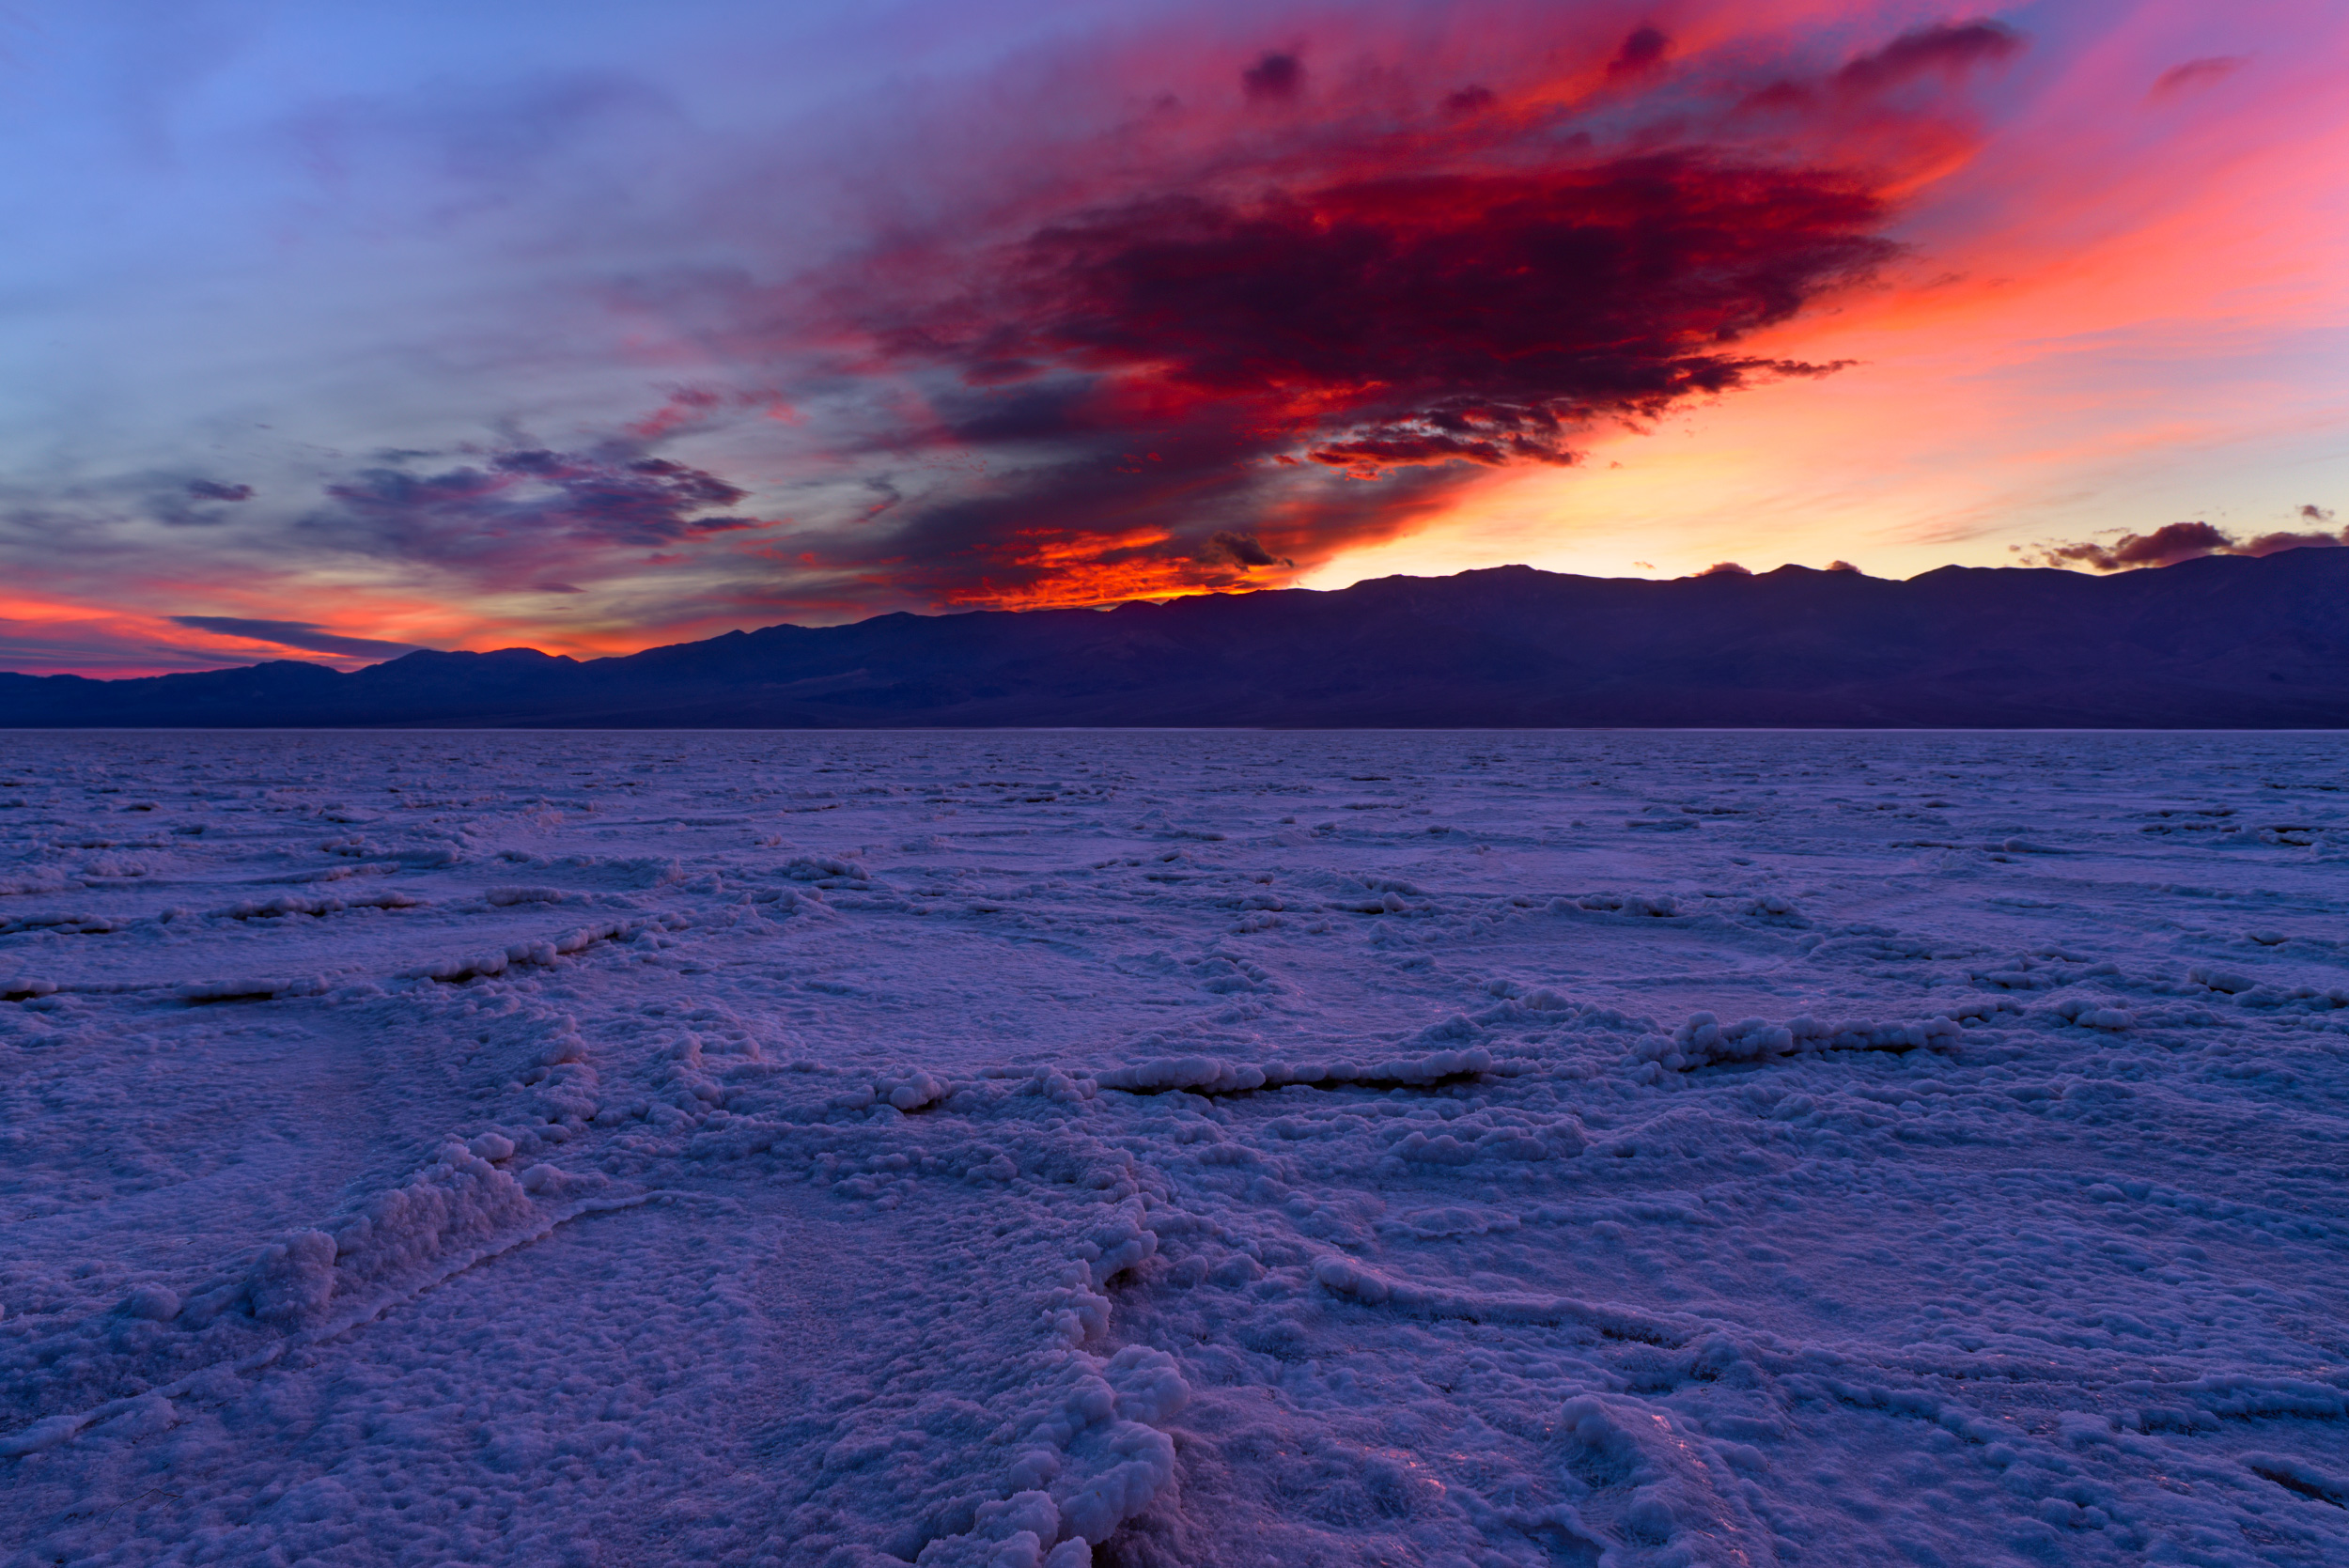 Badwater Sunset -Large thick clouds that got lit up at sunset, on the Badwater salt flats, at Death Valley.